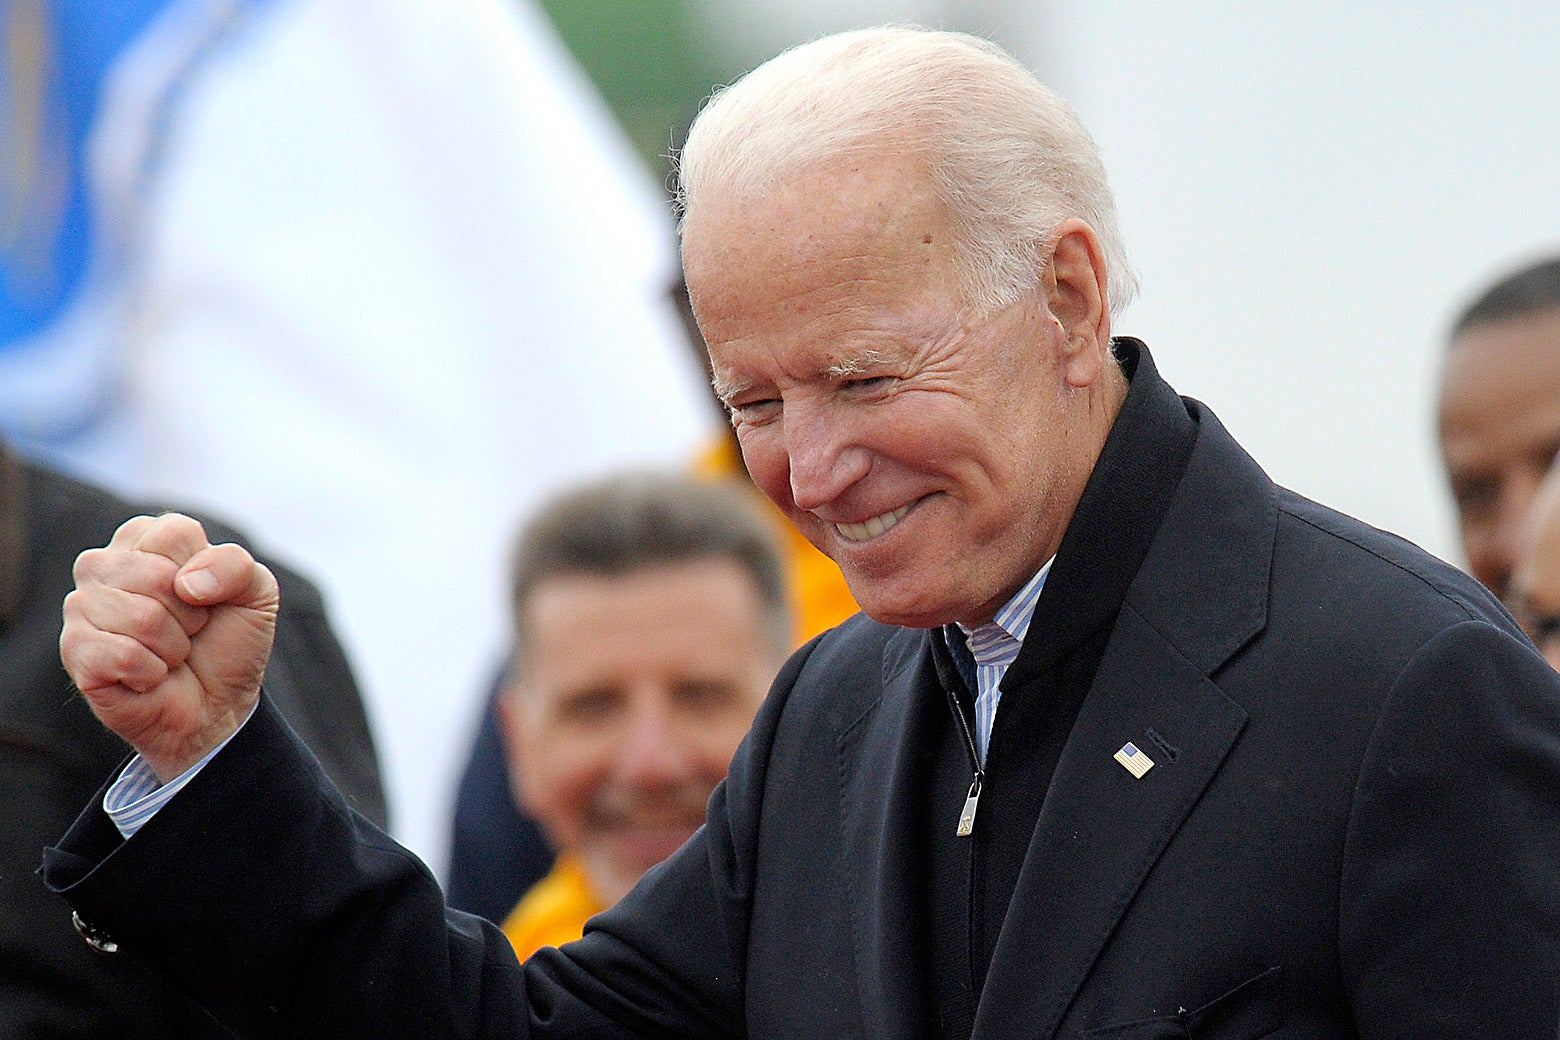 Joe Biden leaves a rally organized by UFCW Union members at the Stop and Shop in Dorchester, Massachusetts, on Friday.